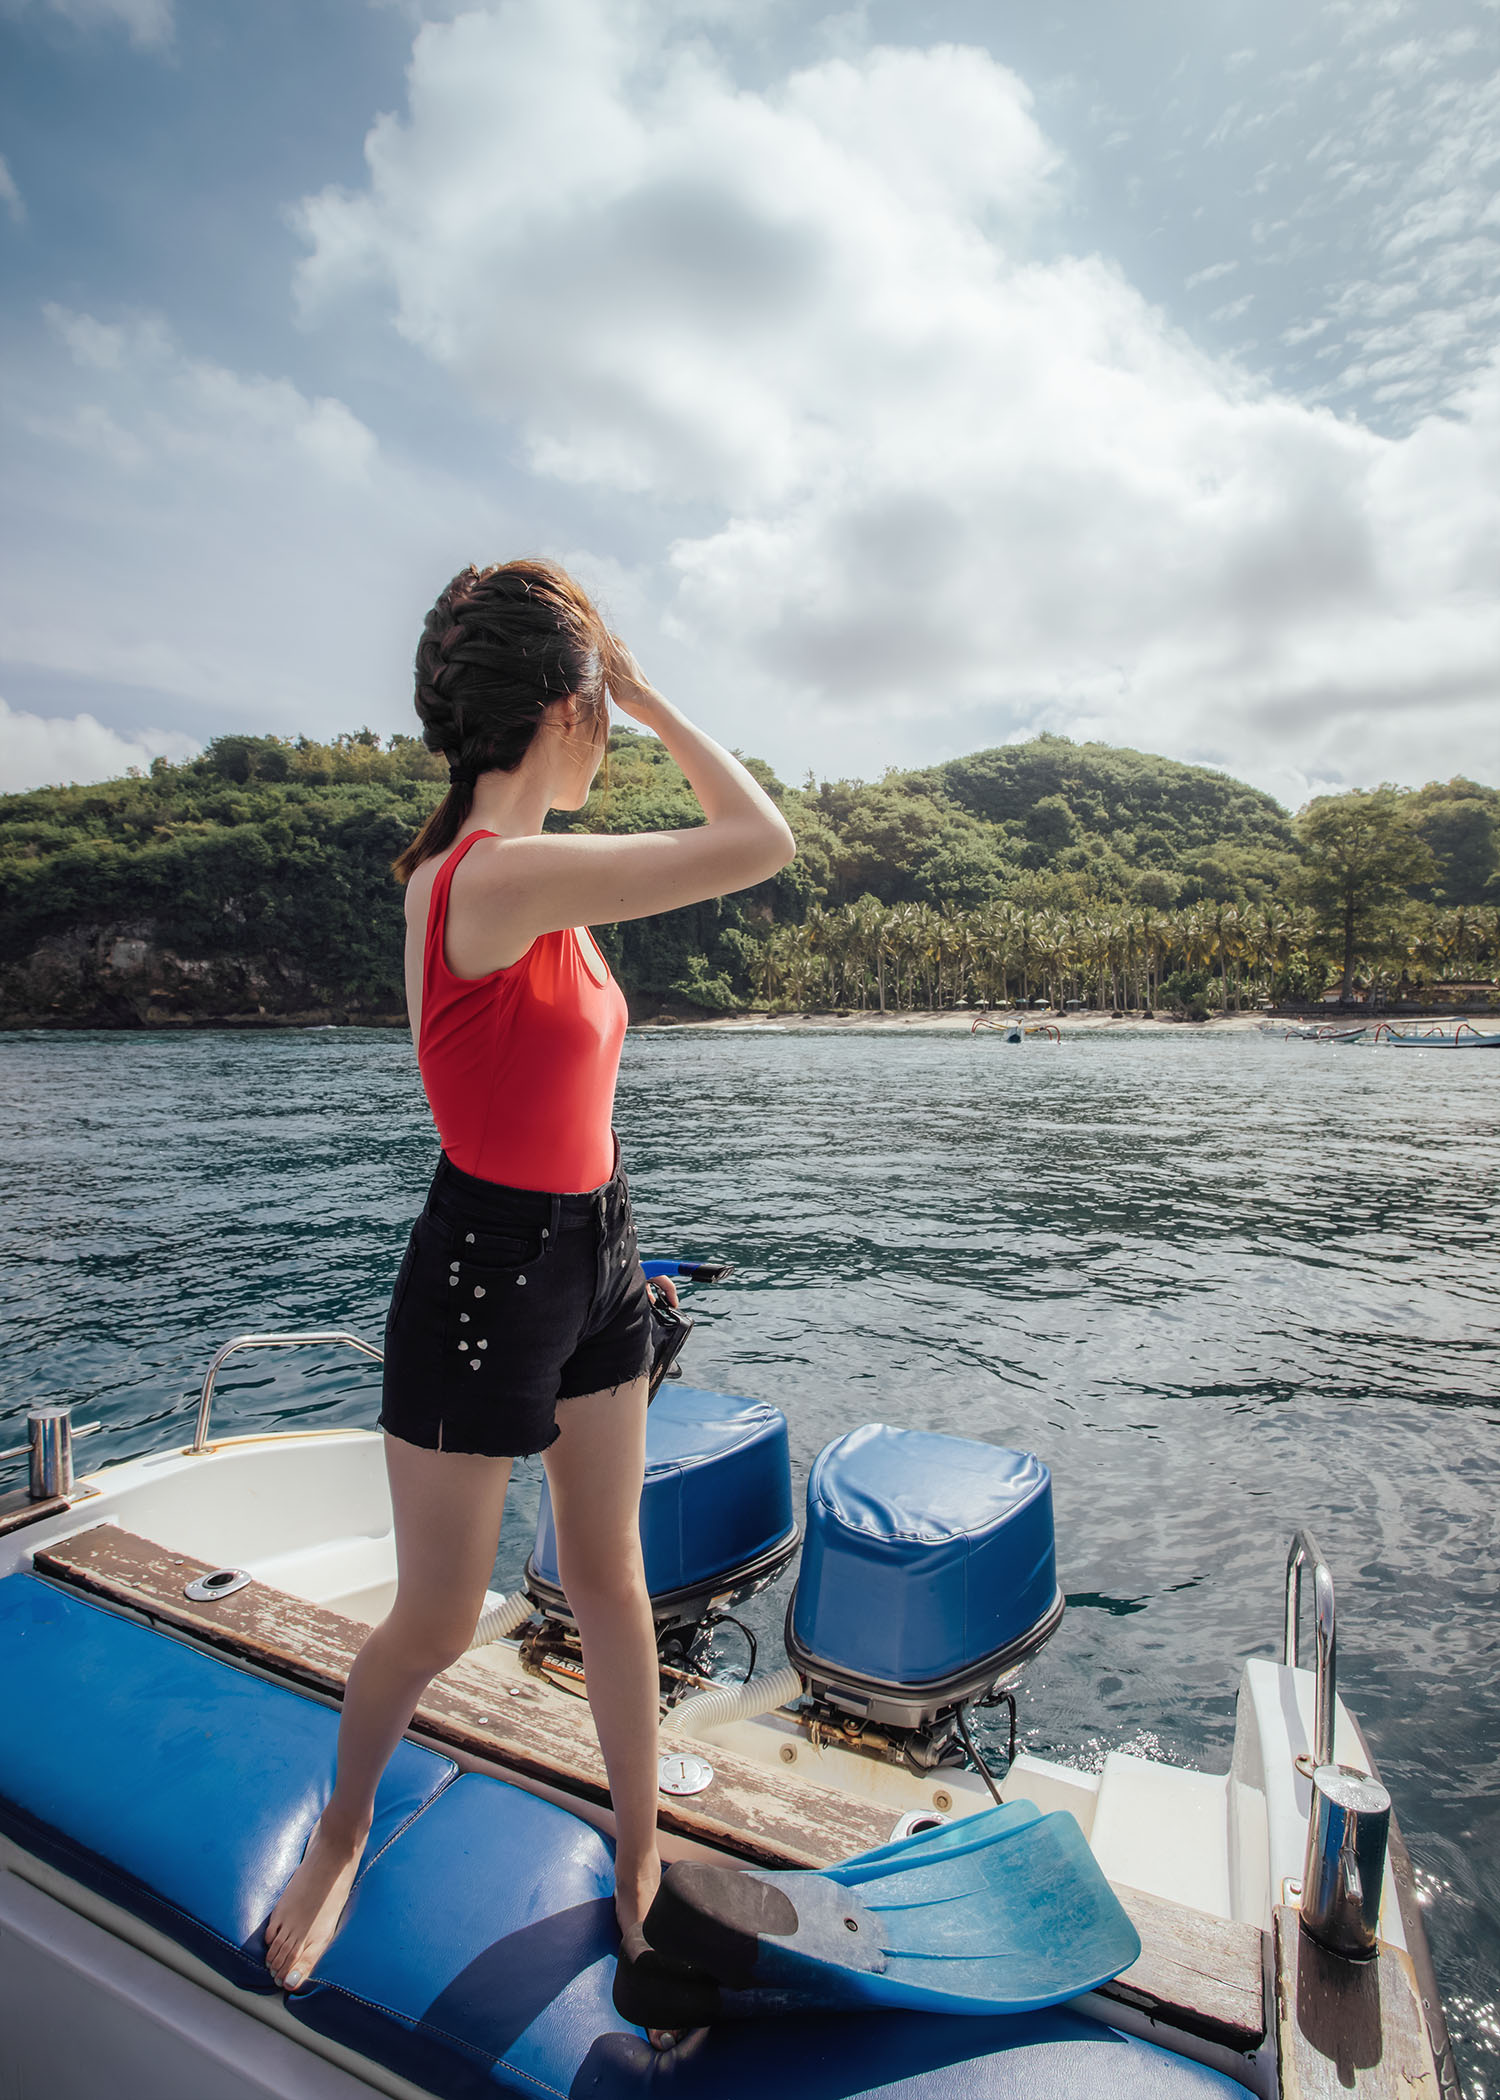 Fashion and travel blogger influencer Jenny Tsang of Tsangtastic traveling in Bali, Indonesia, wearing COVER Tank Swimsuit, PAIGE Heart Shorts, while snorkeling.